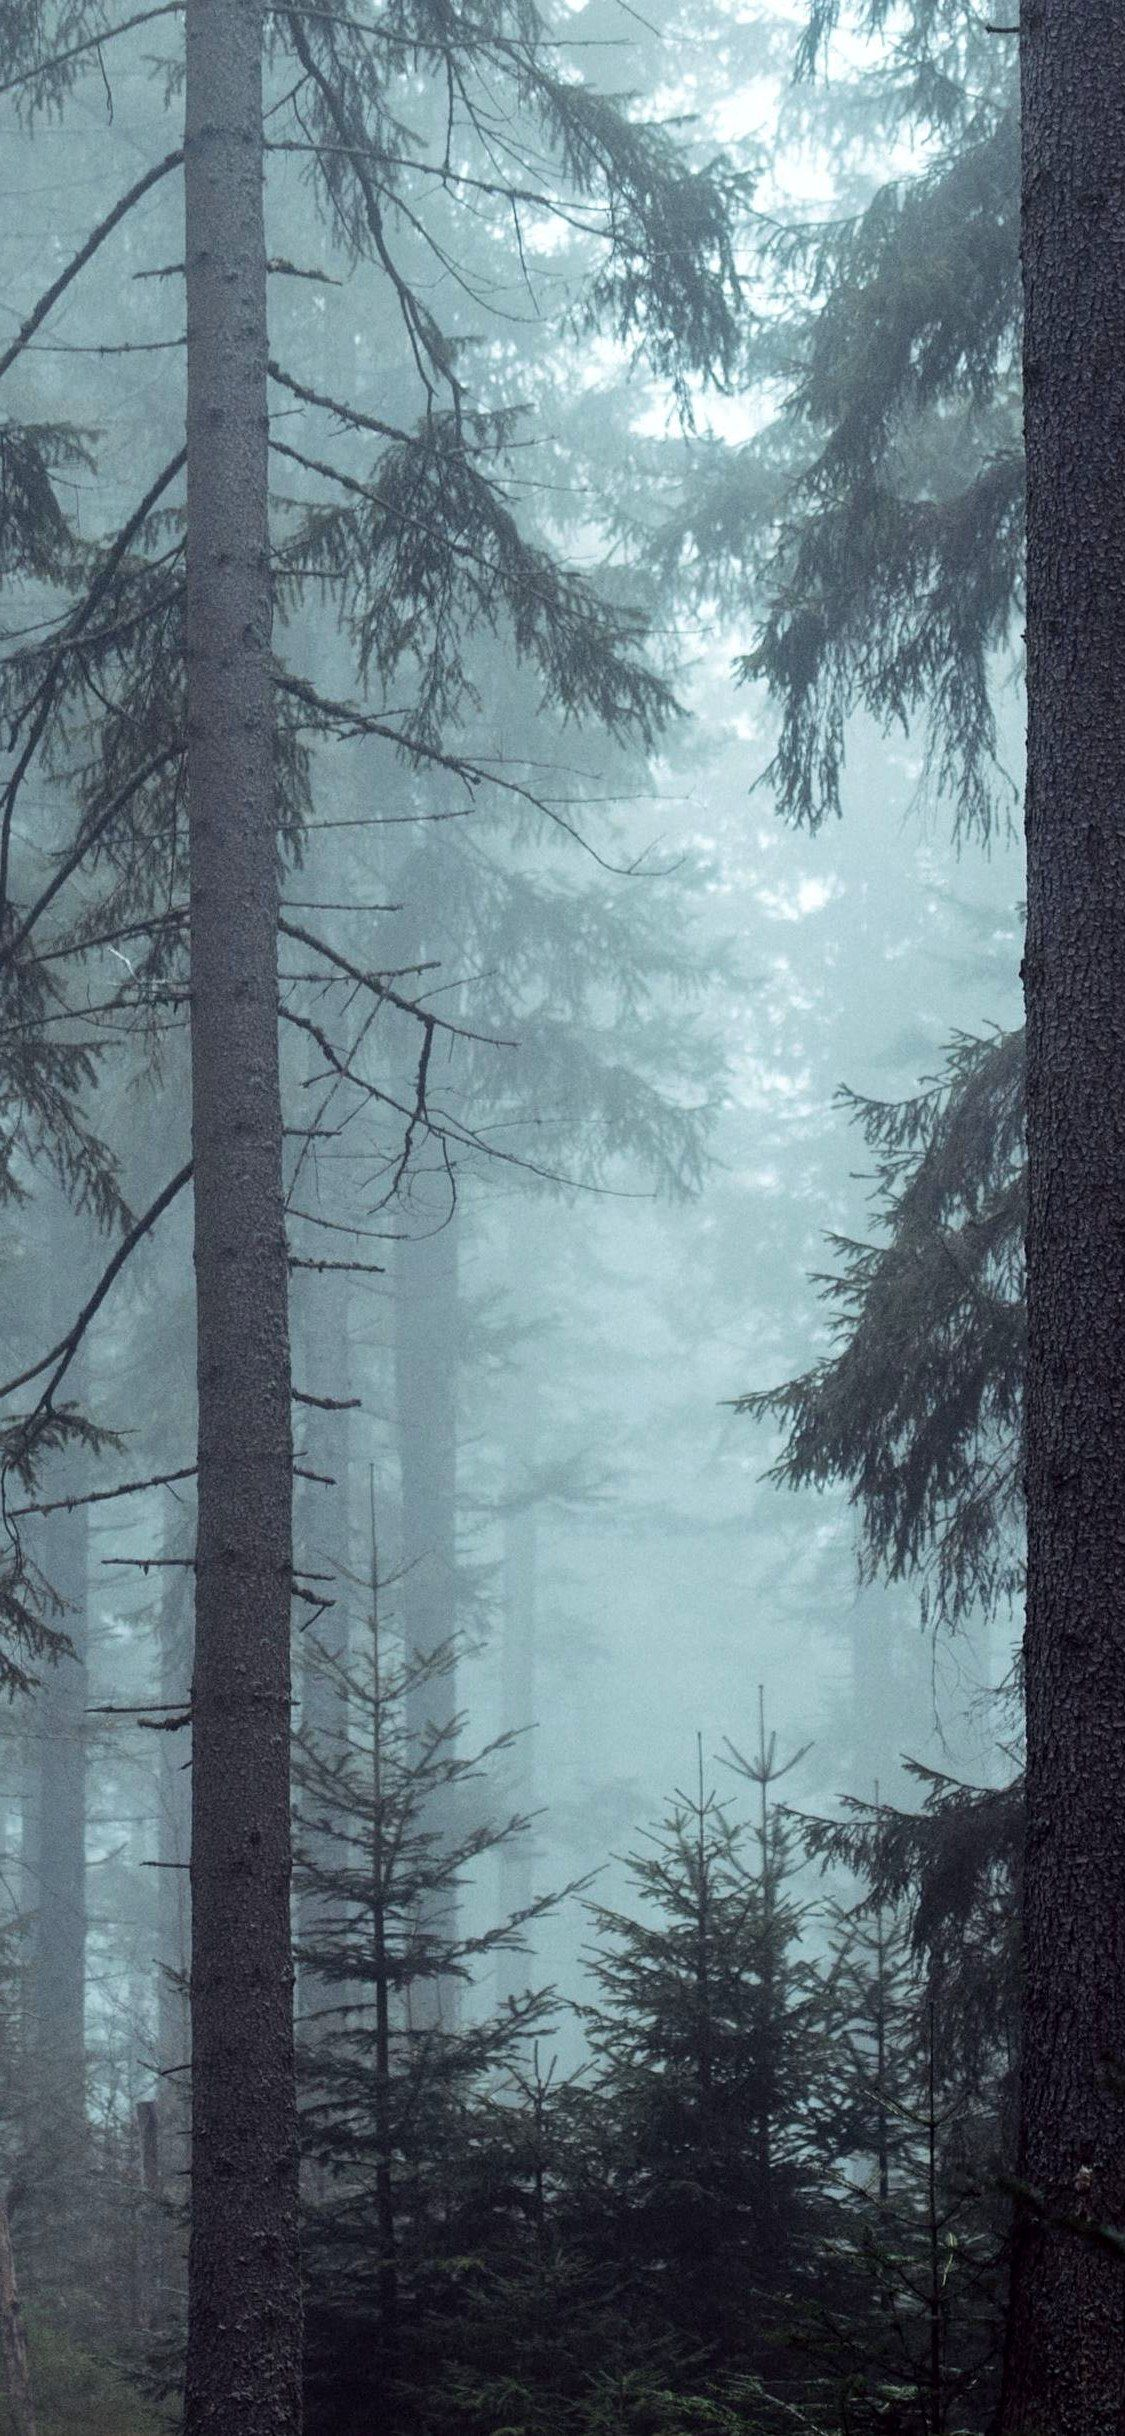 Forest Woods Misty Forest Trees Wallpaper Iphone X Wallpaper Tree Wallpaper Iphone Forest Wallpaper Iphone Misty Forest